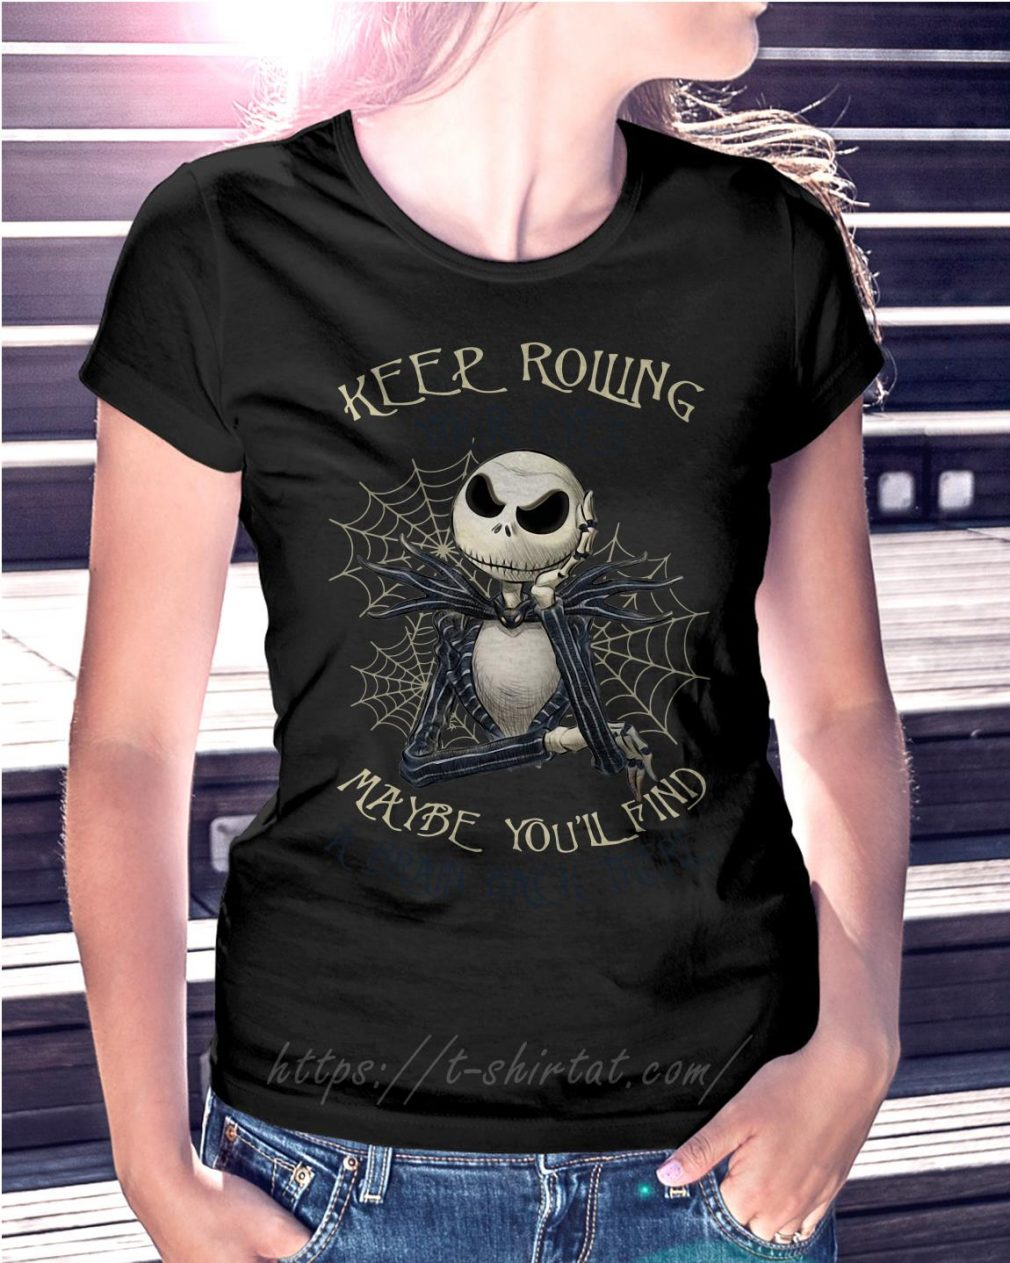 Jack Skellington keep rolling maybe you'll find a brain back there